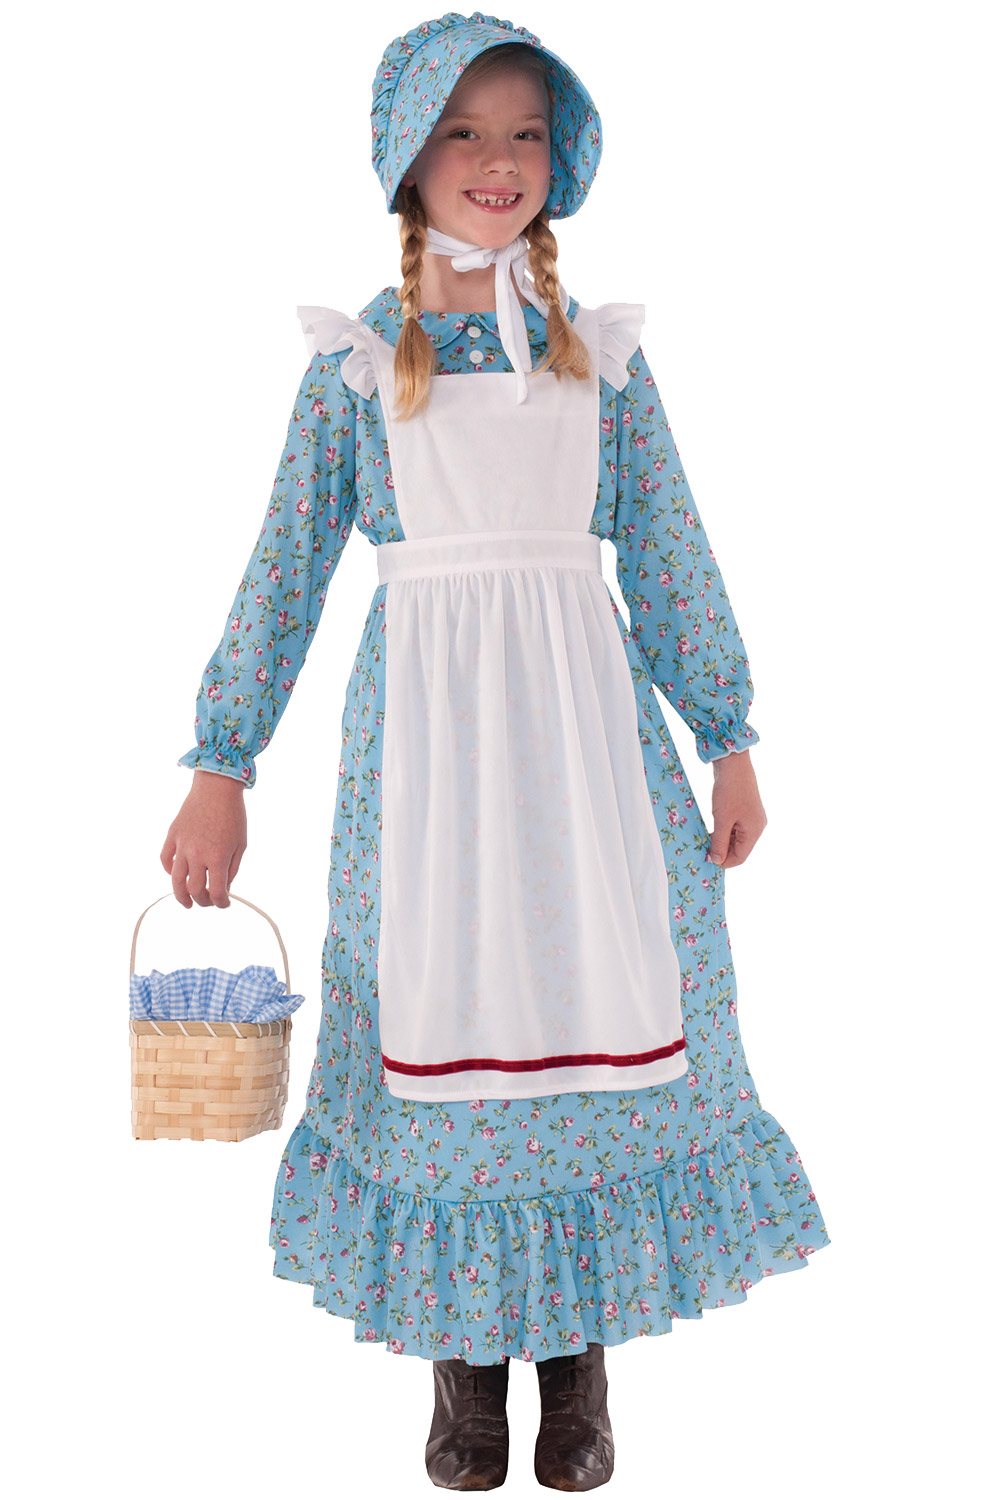 American Pioneer Girl Child Costume (Large) - PureCostumes.com